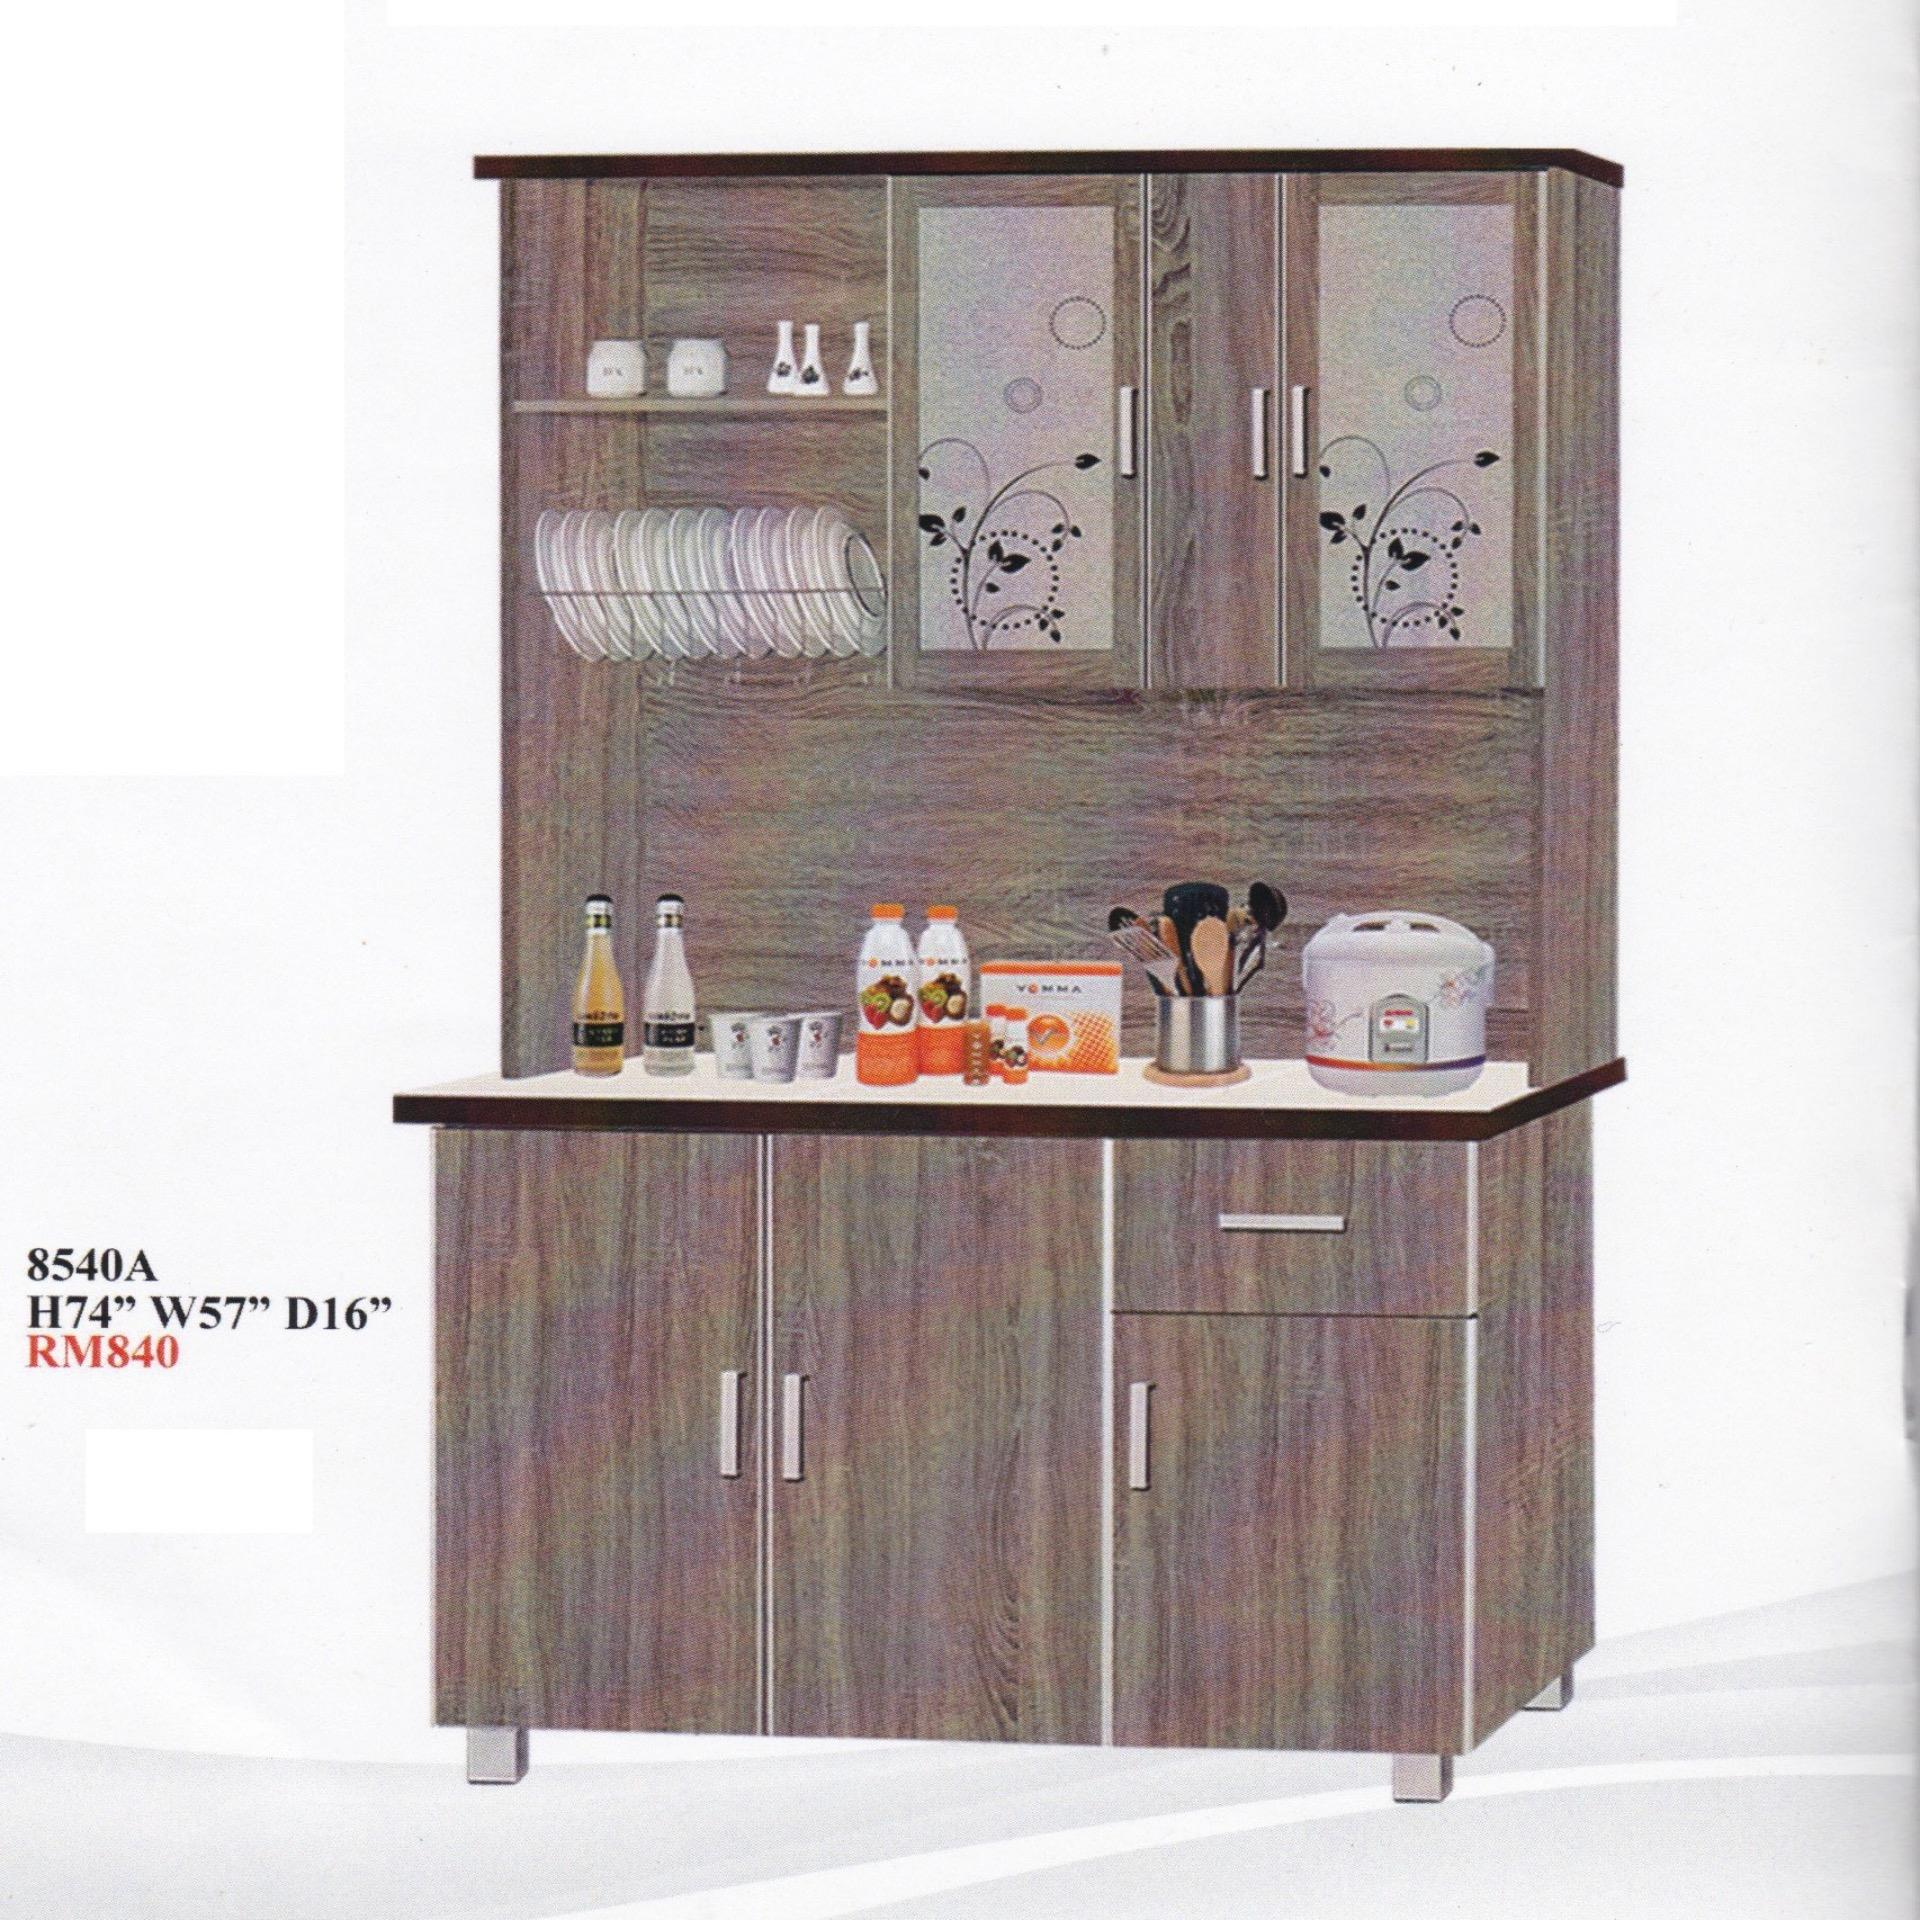 Ready Fixed Kitchen Cabinet Rack 85 End 4 28 2021 12 00 Am